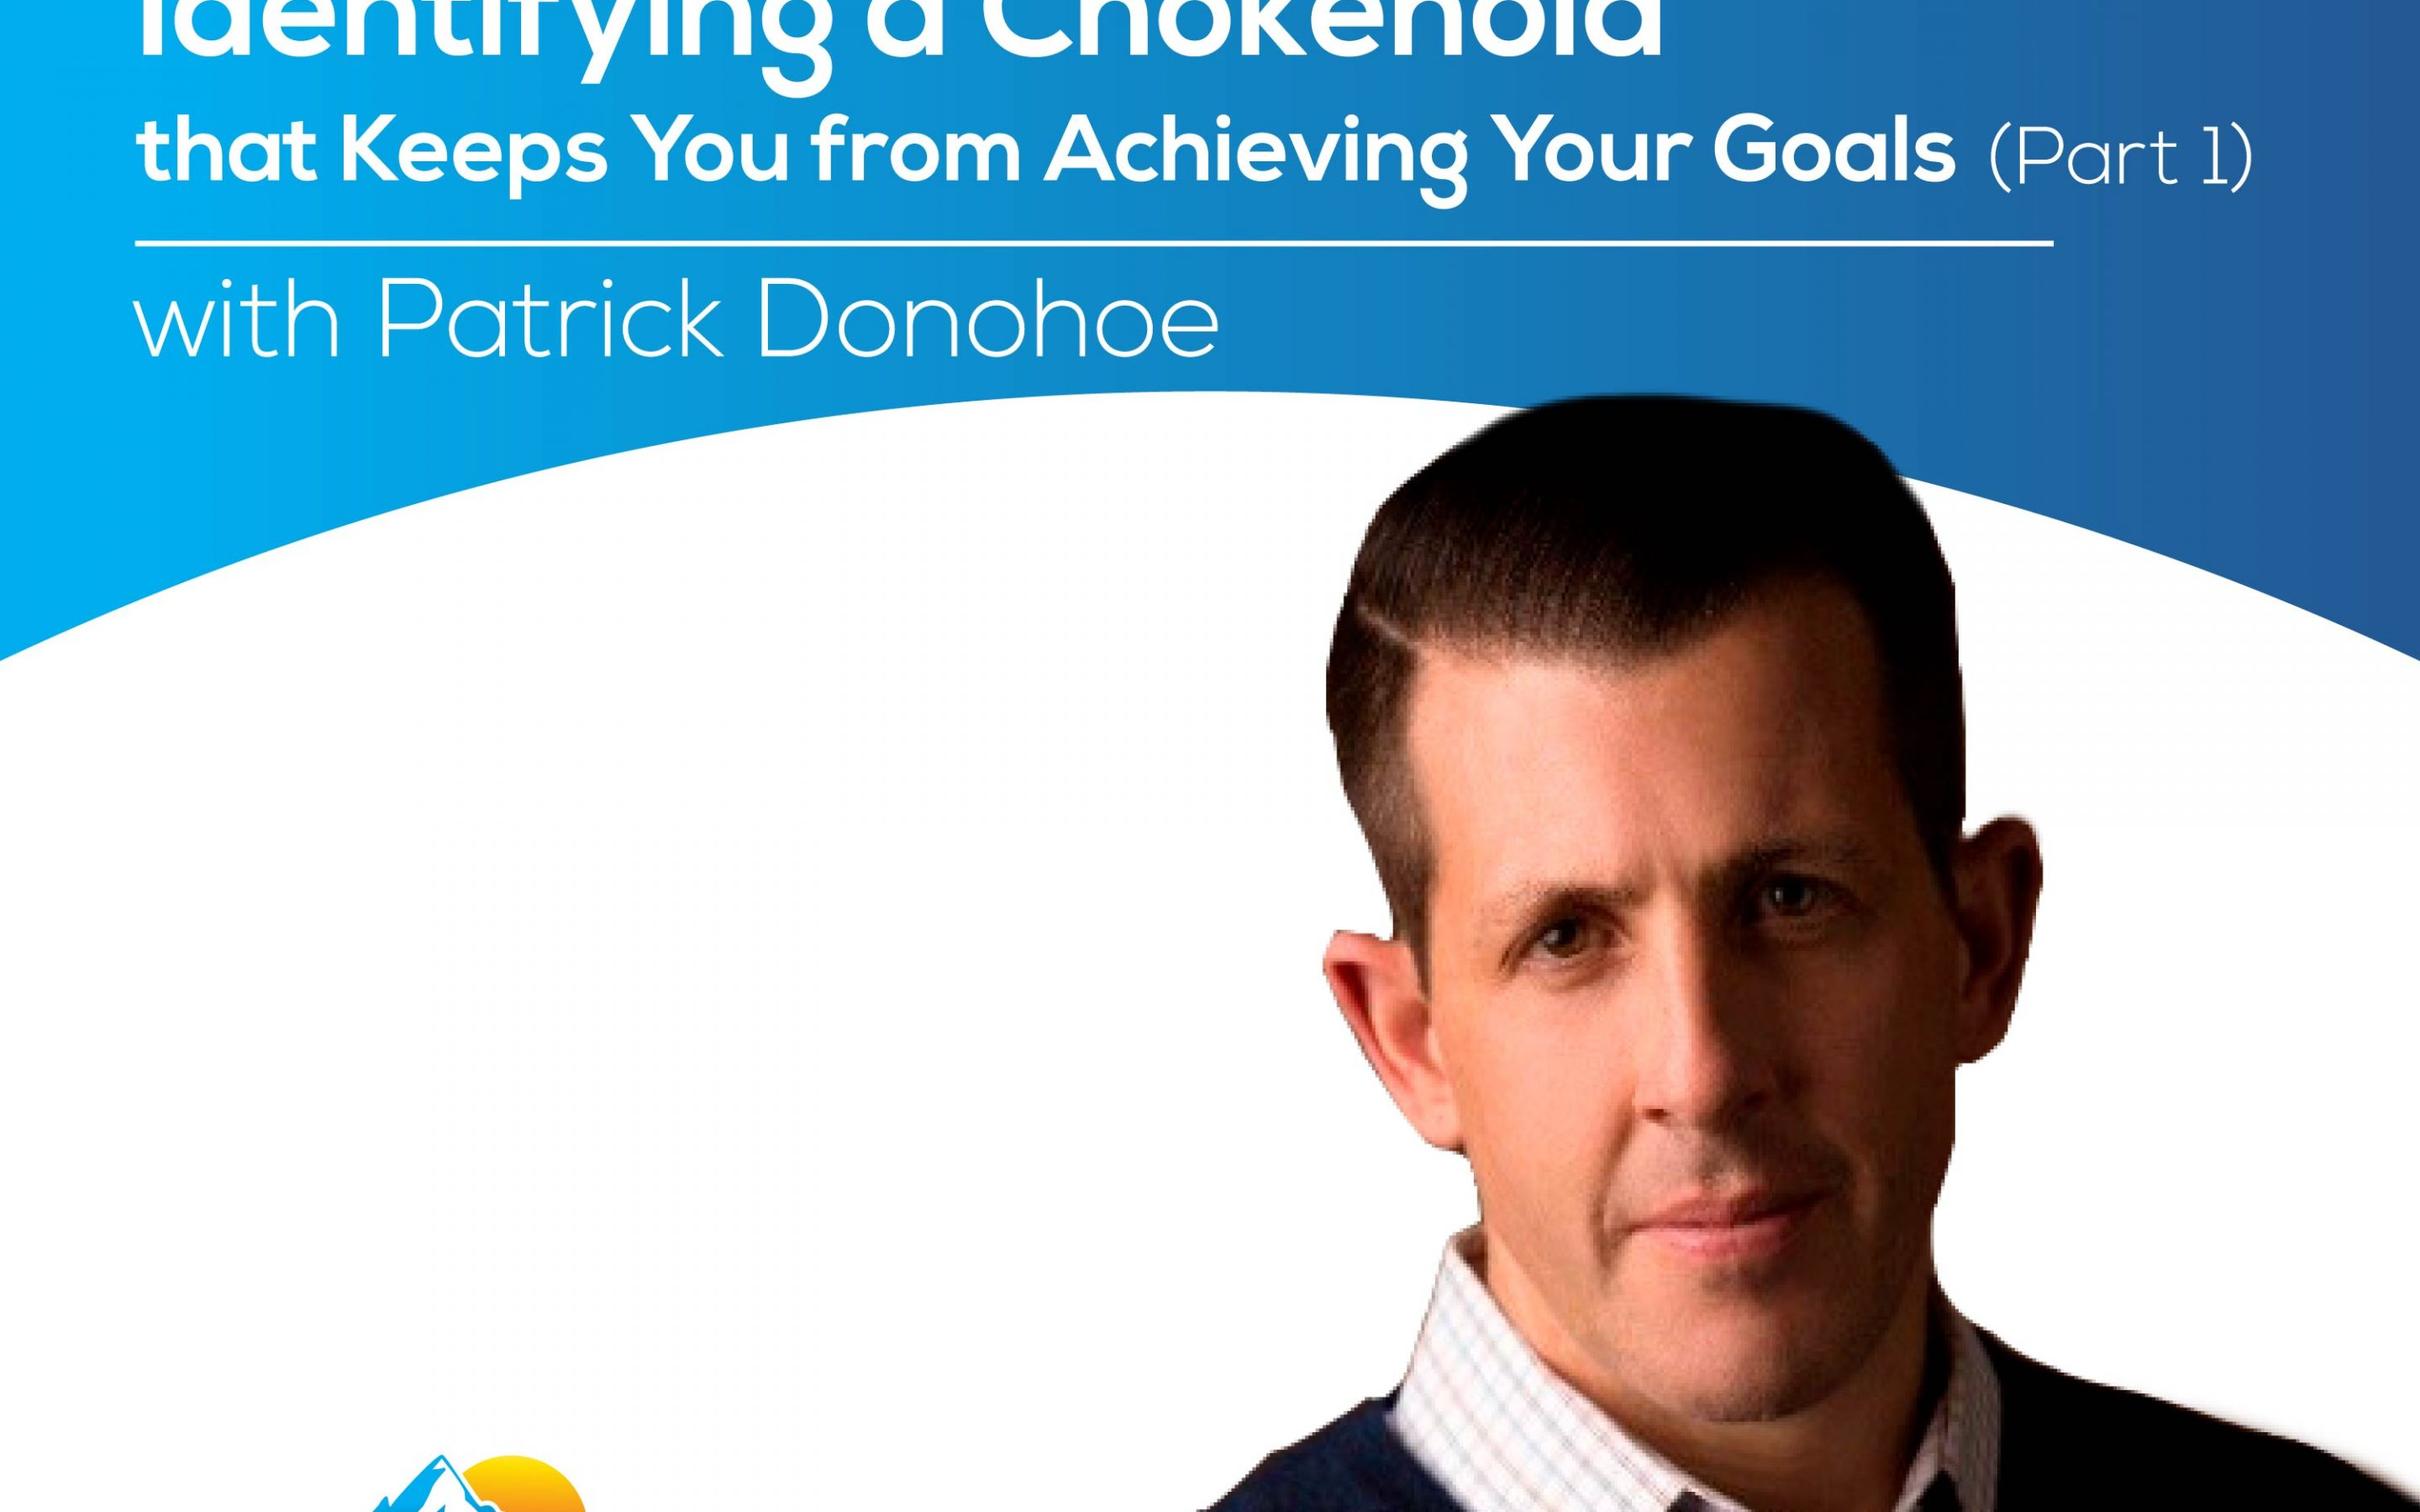 Identifying a Chokehold that Keeps You from Achieving Your Goals (Part 1) with Patrick Donohoe – Episode 161